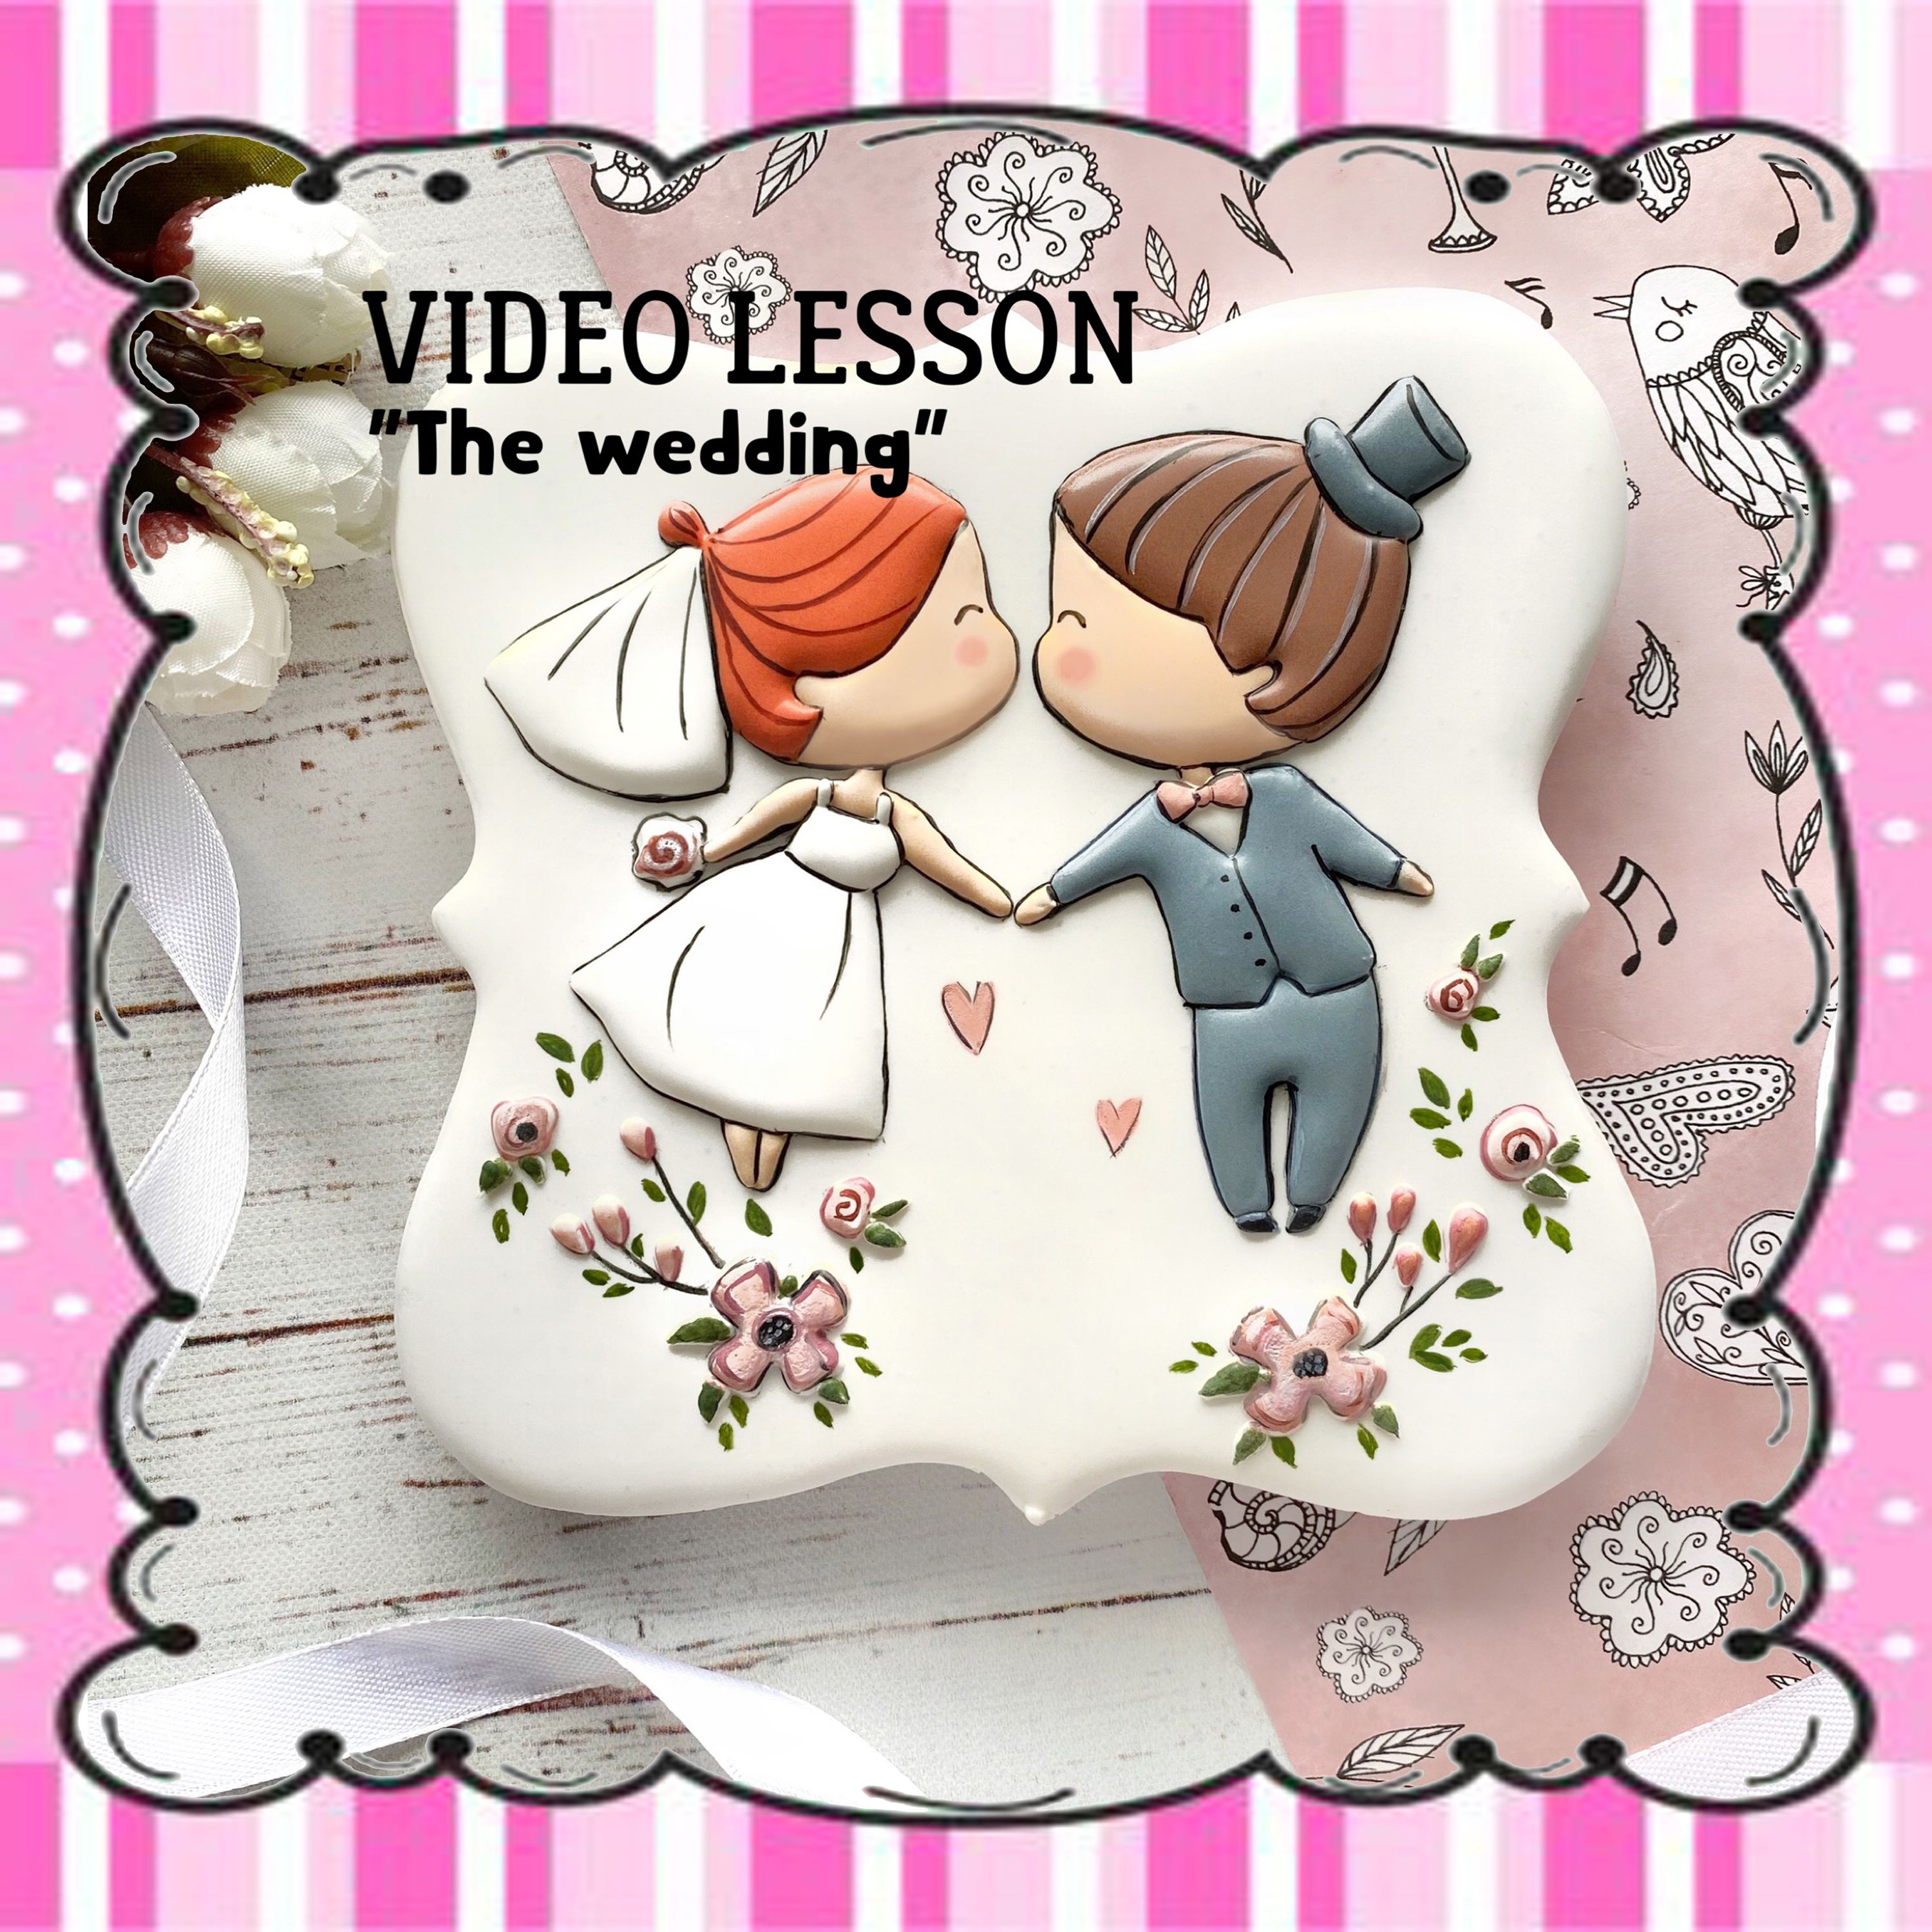 The Wedding Online Cookie Decorating Class Step By Step Video Etsy In 2020 Cookie Decorating Online Wedding Etsy Handmade